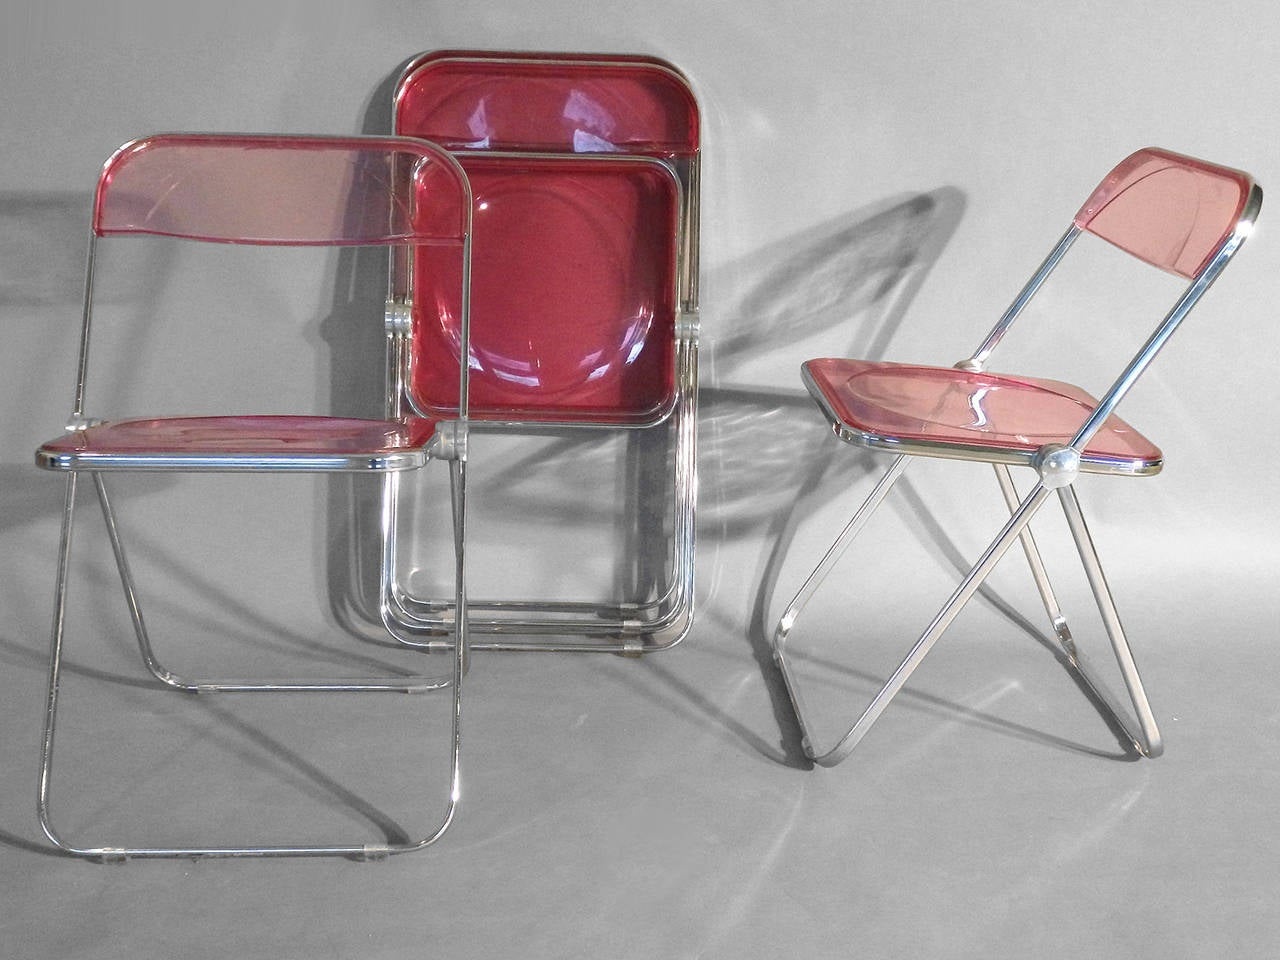 krueger folding chairs mainstays large microsuede saucer chair set of four plia lucite aluminum and chrome